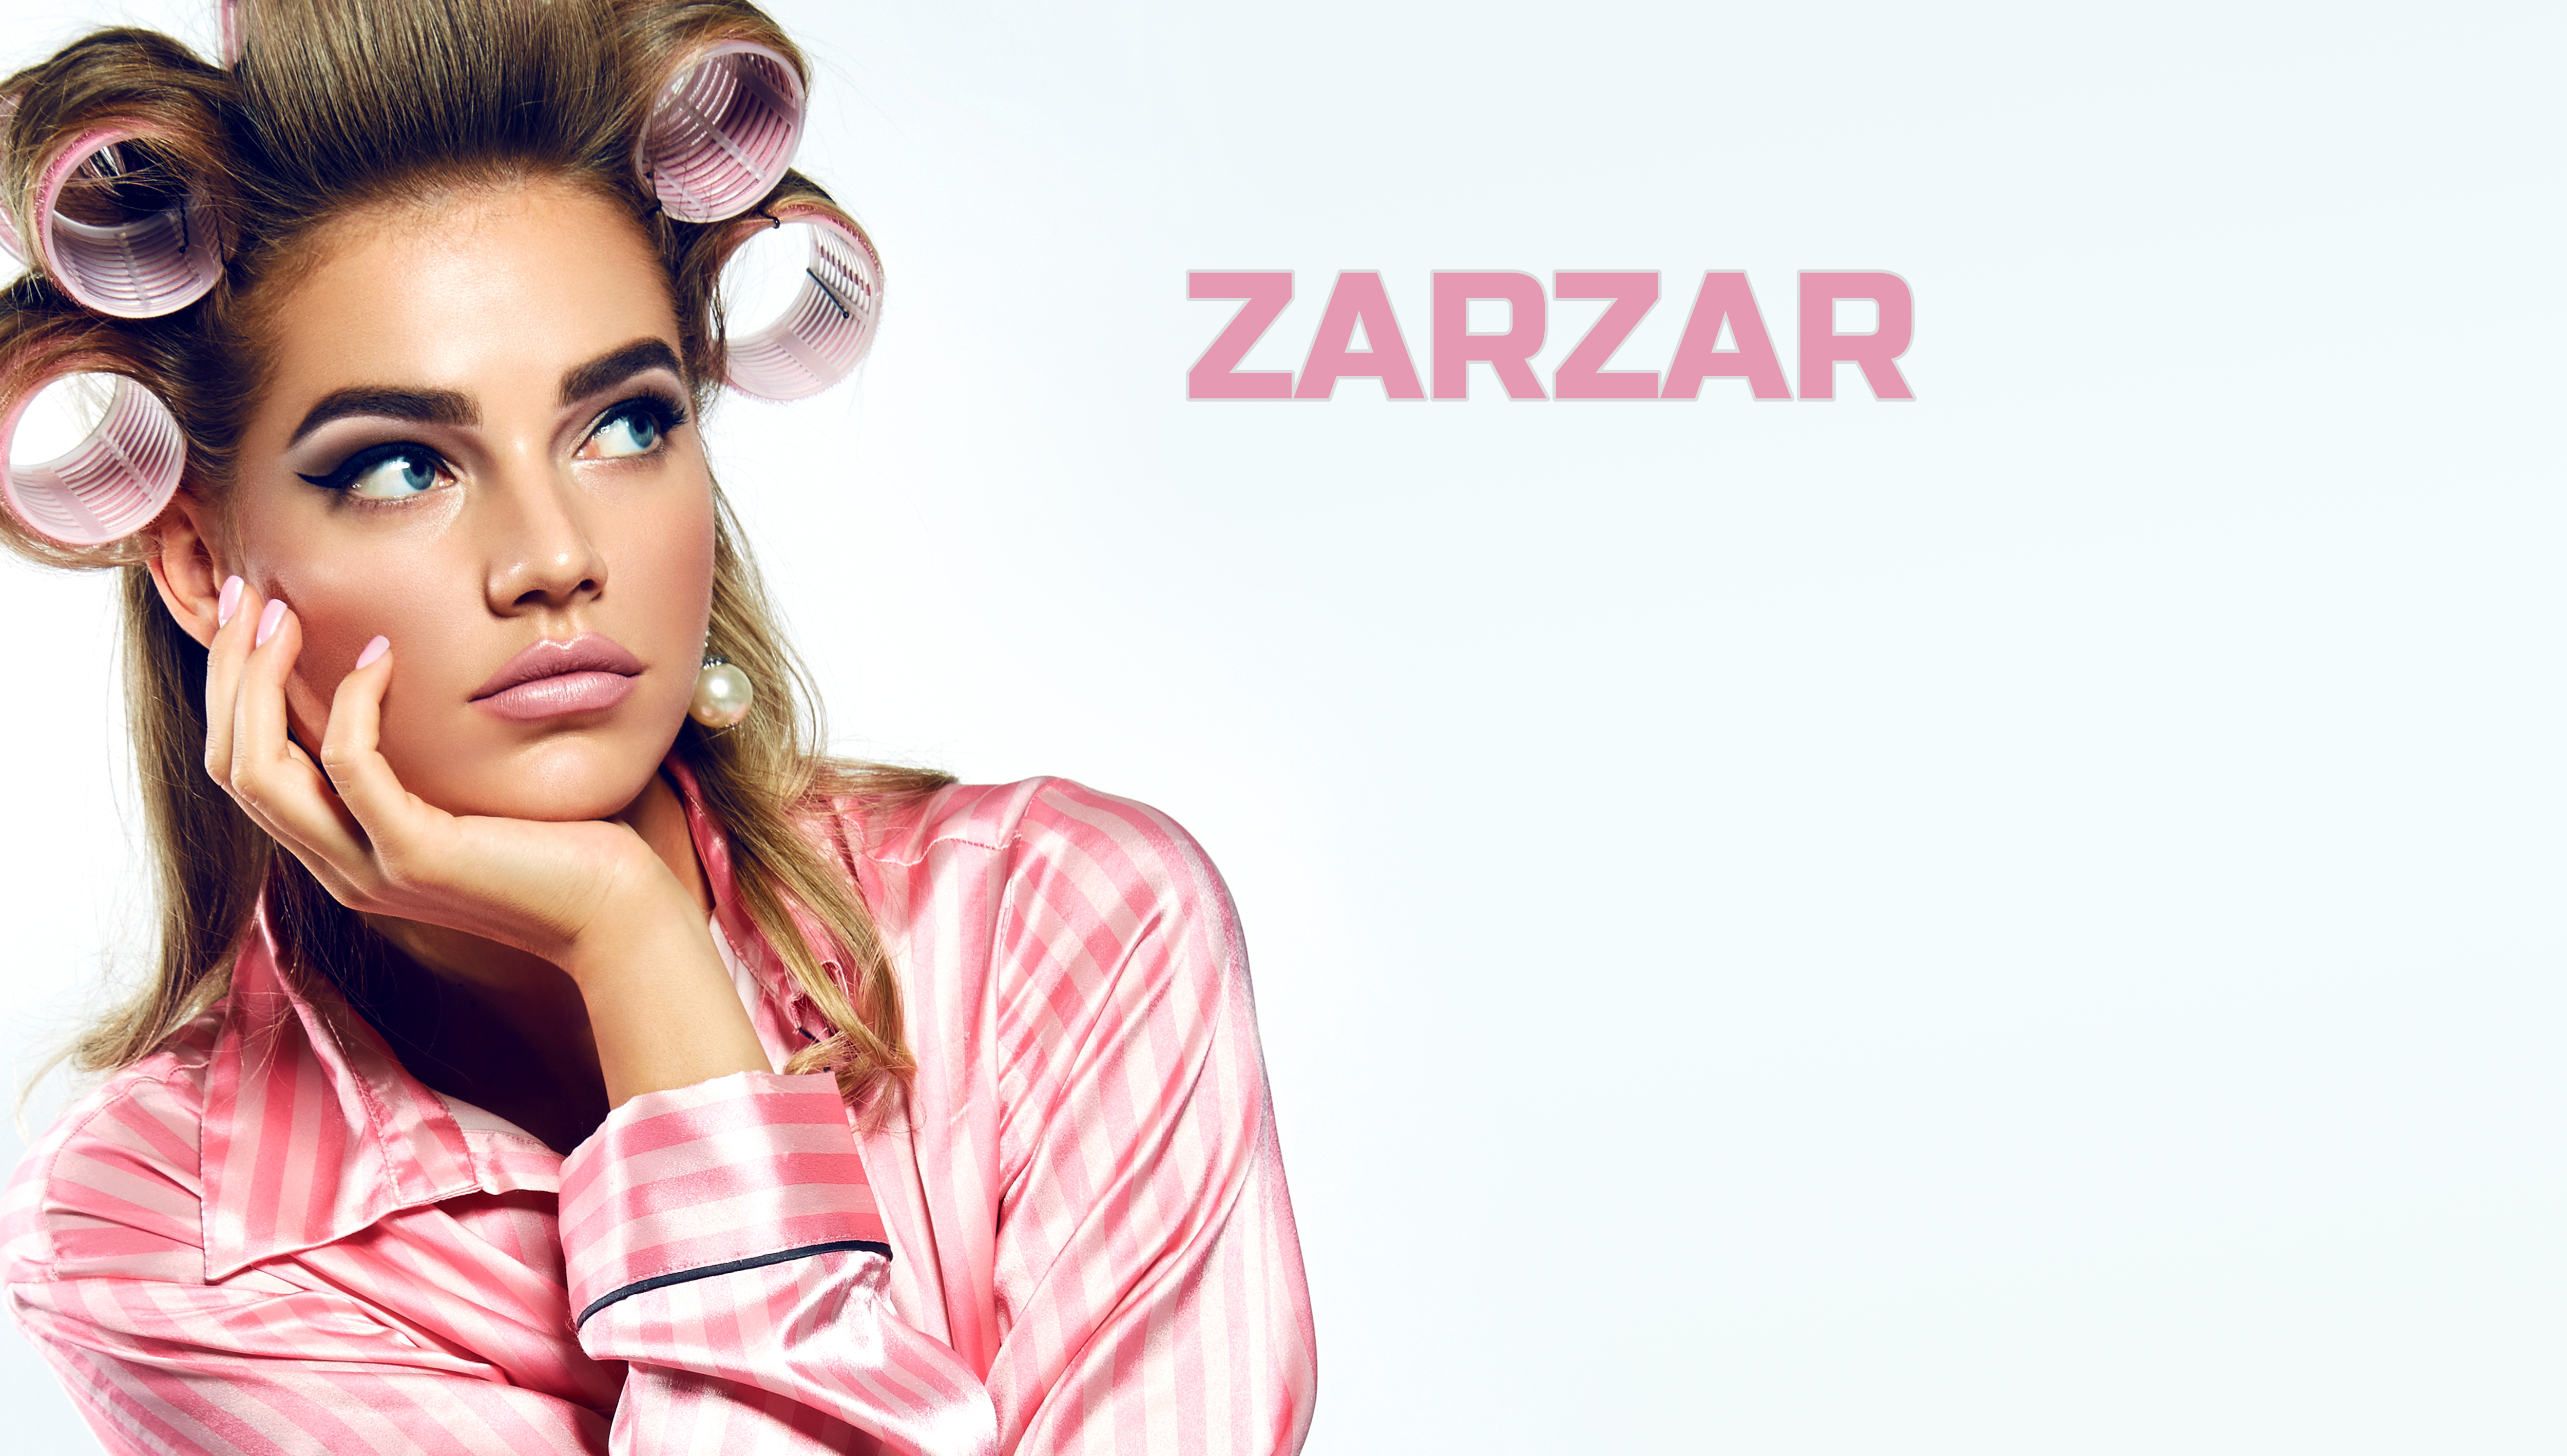 Luxury Hair Care Products For Women. Beautiful Hair Styling Models, Beauty Models, And Beautiful Fashion Models. ZARZAR FASHION Sexy Hair Care Products For Women.